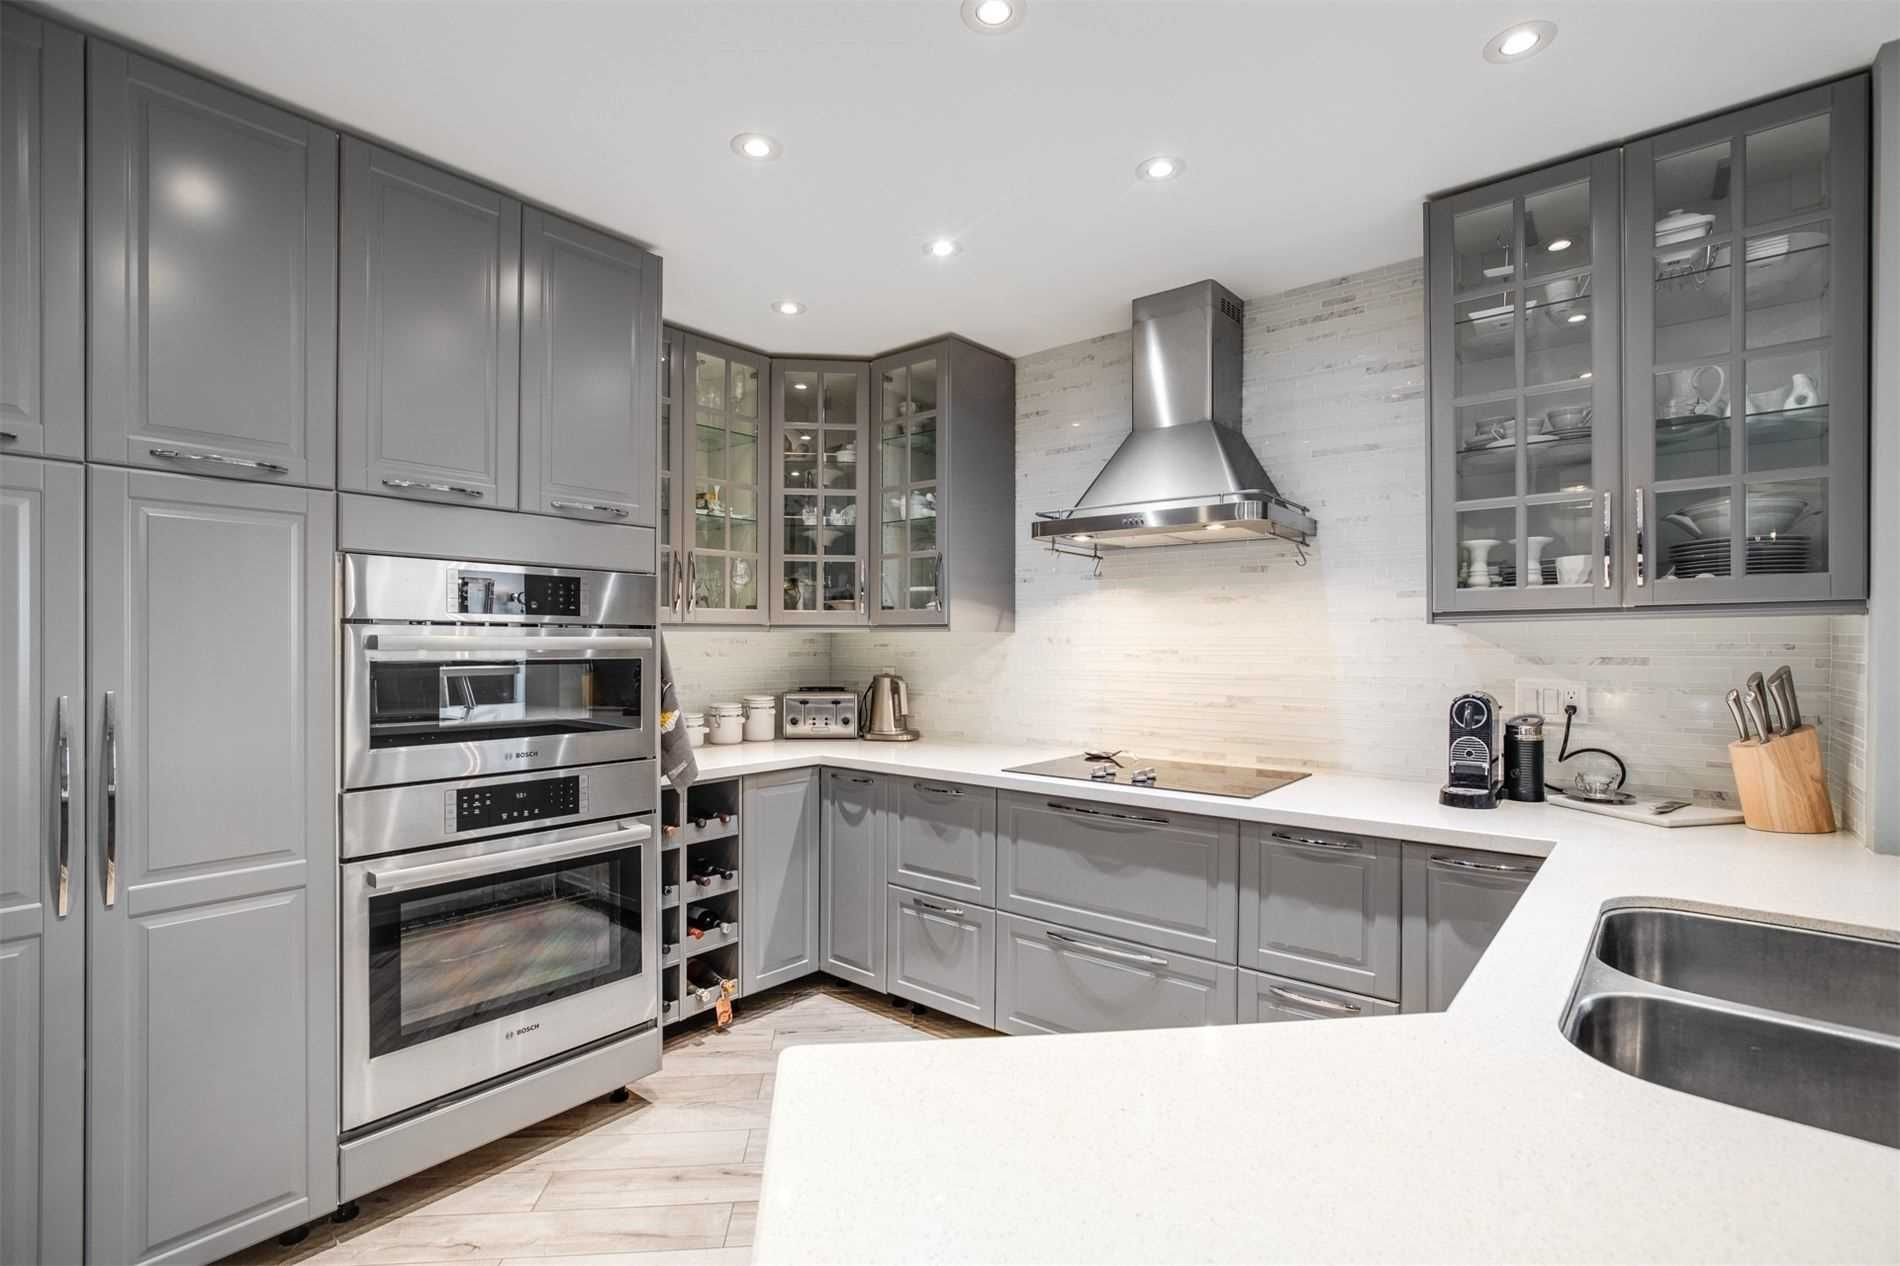 22 Southport St, unit 1040 for rent in Toronto - image #2